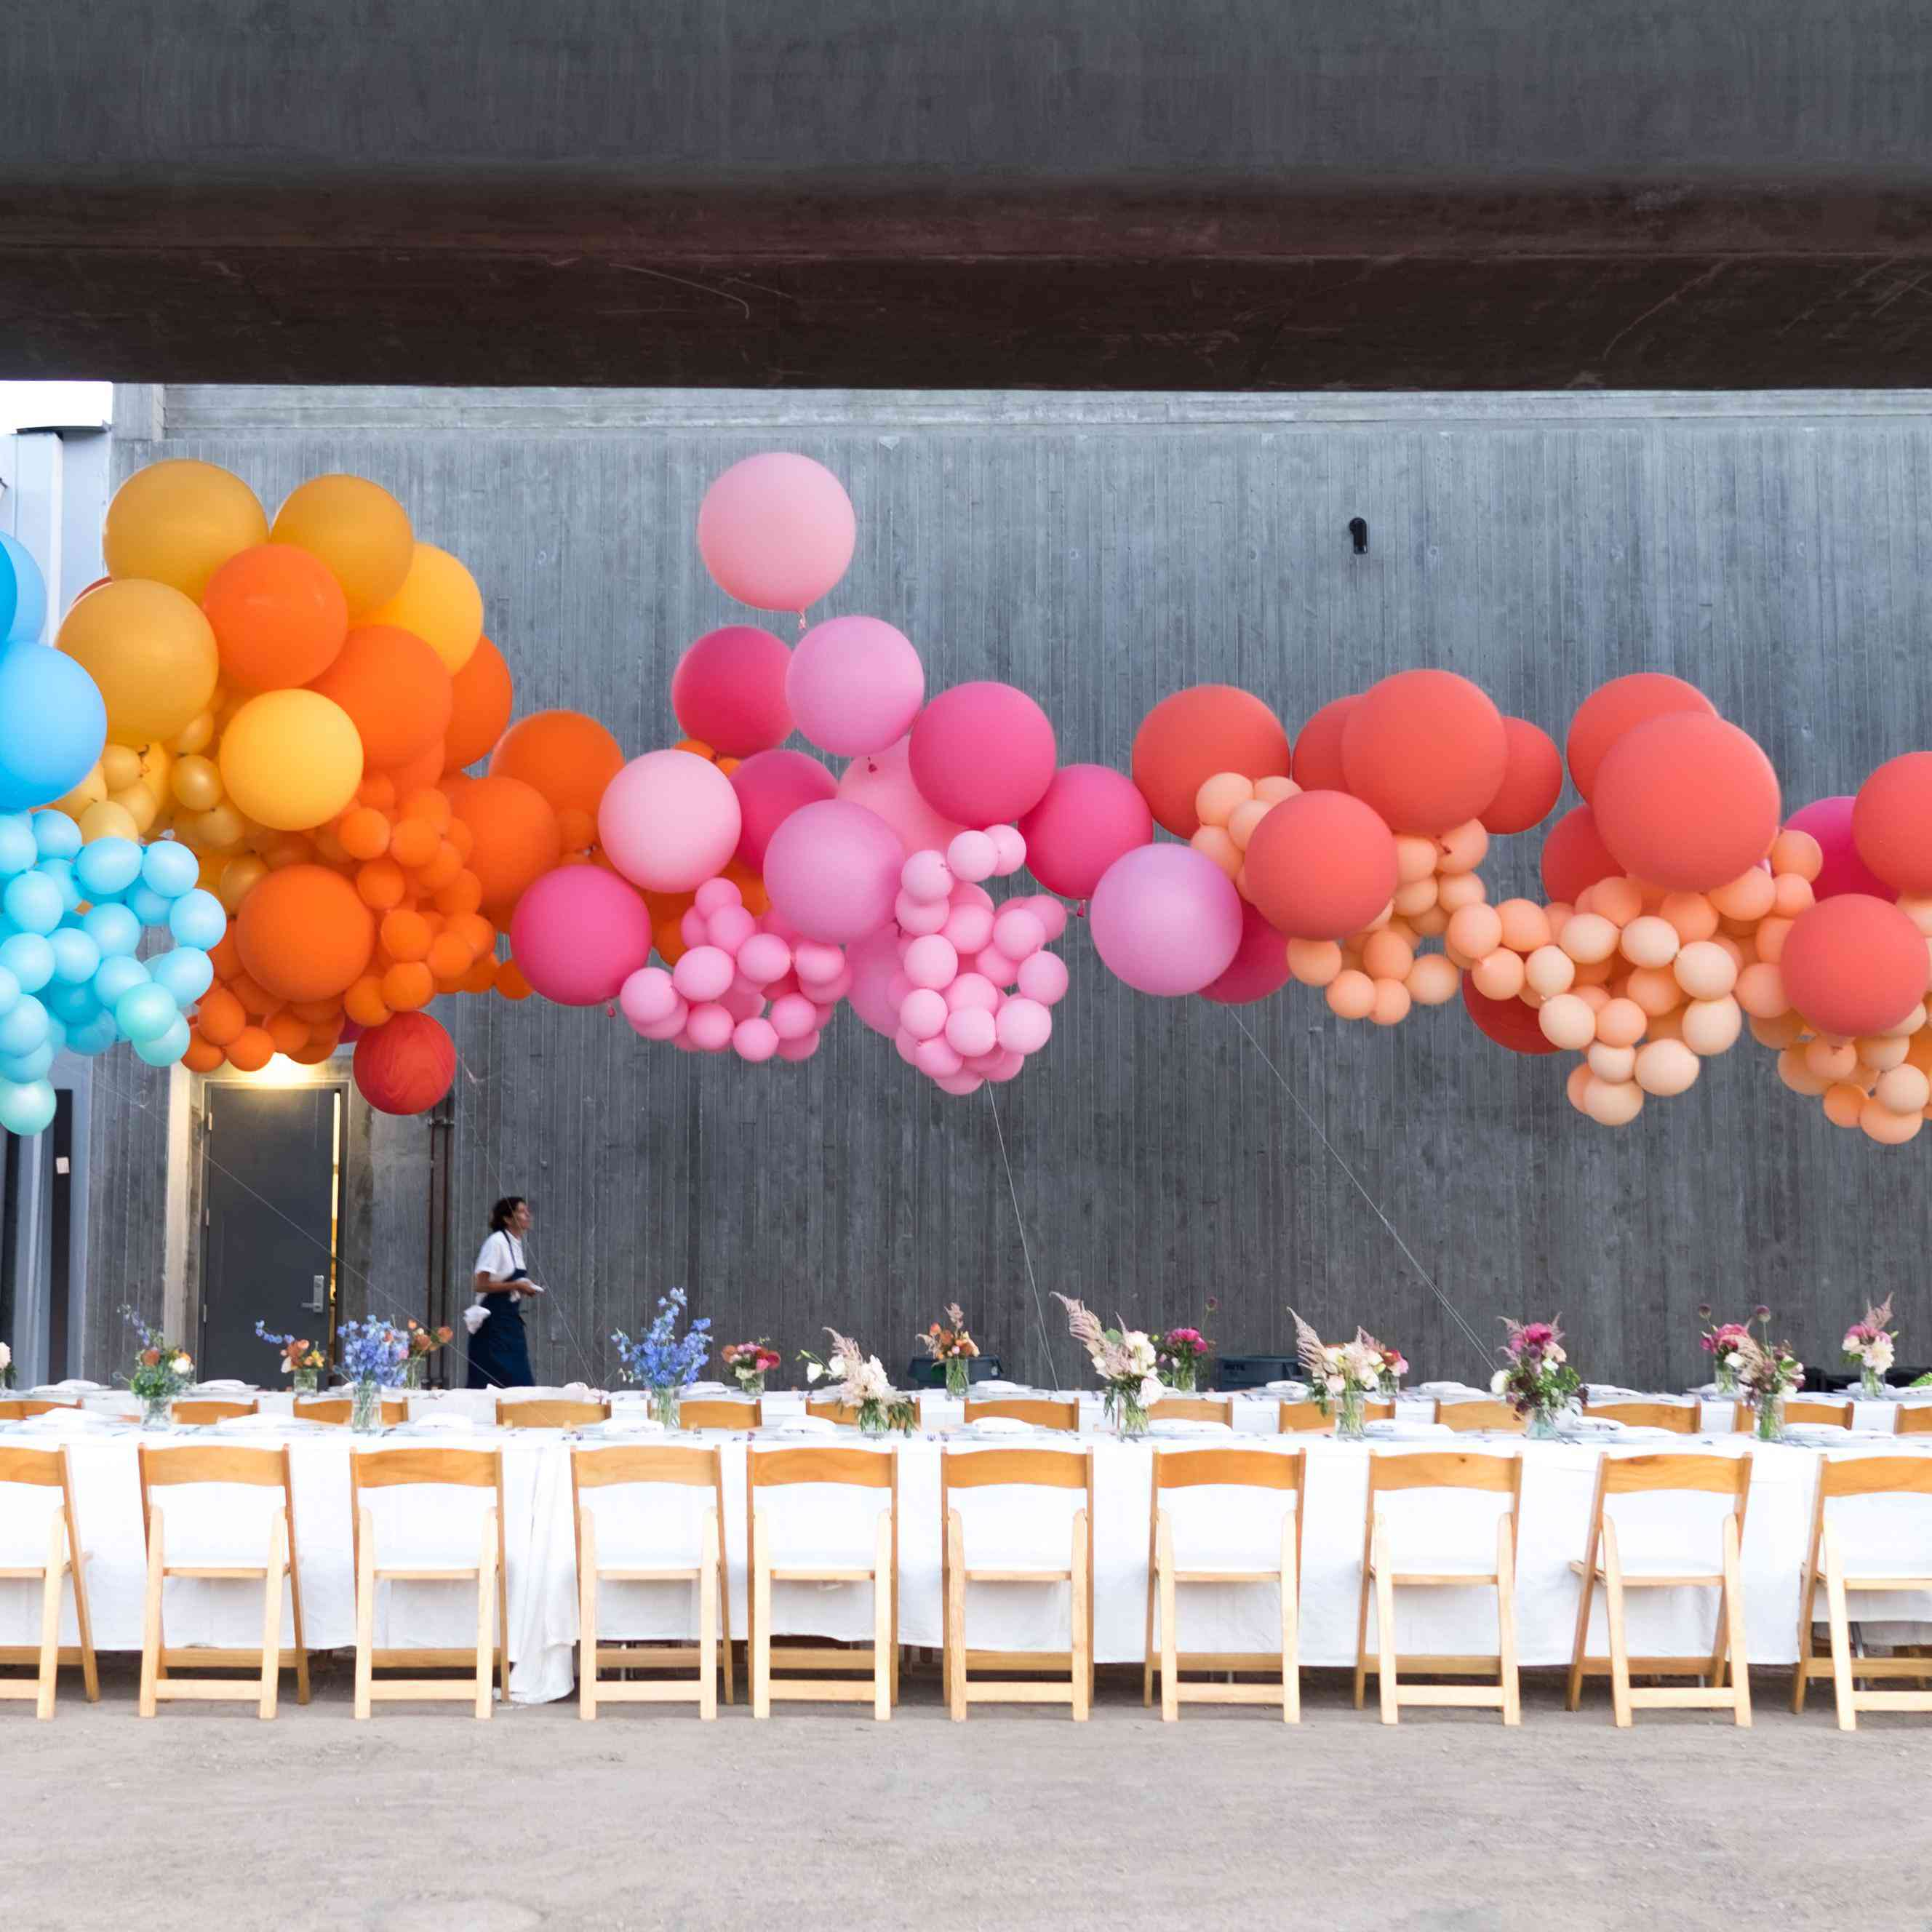 25 Best Rooms For Kids Trending Ideas On Pinterest: 19 Ways To Use Balloons In Your Wedding Decor